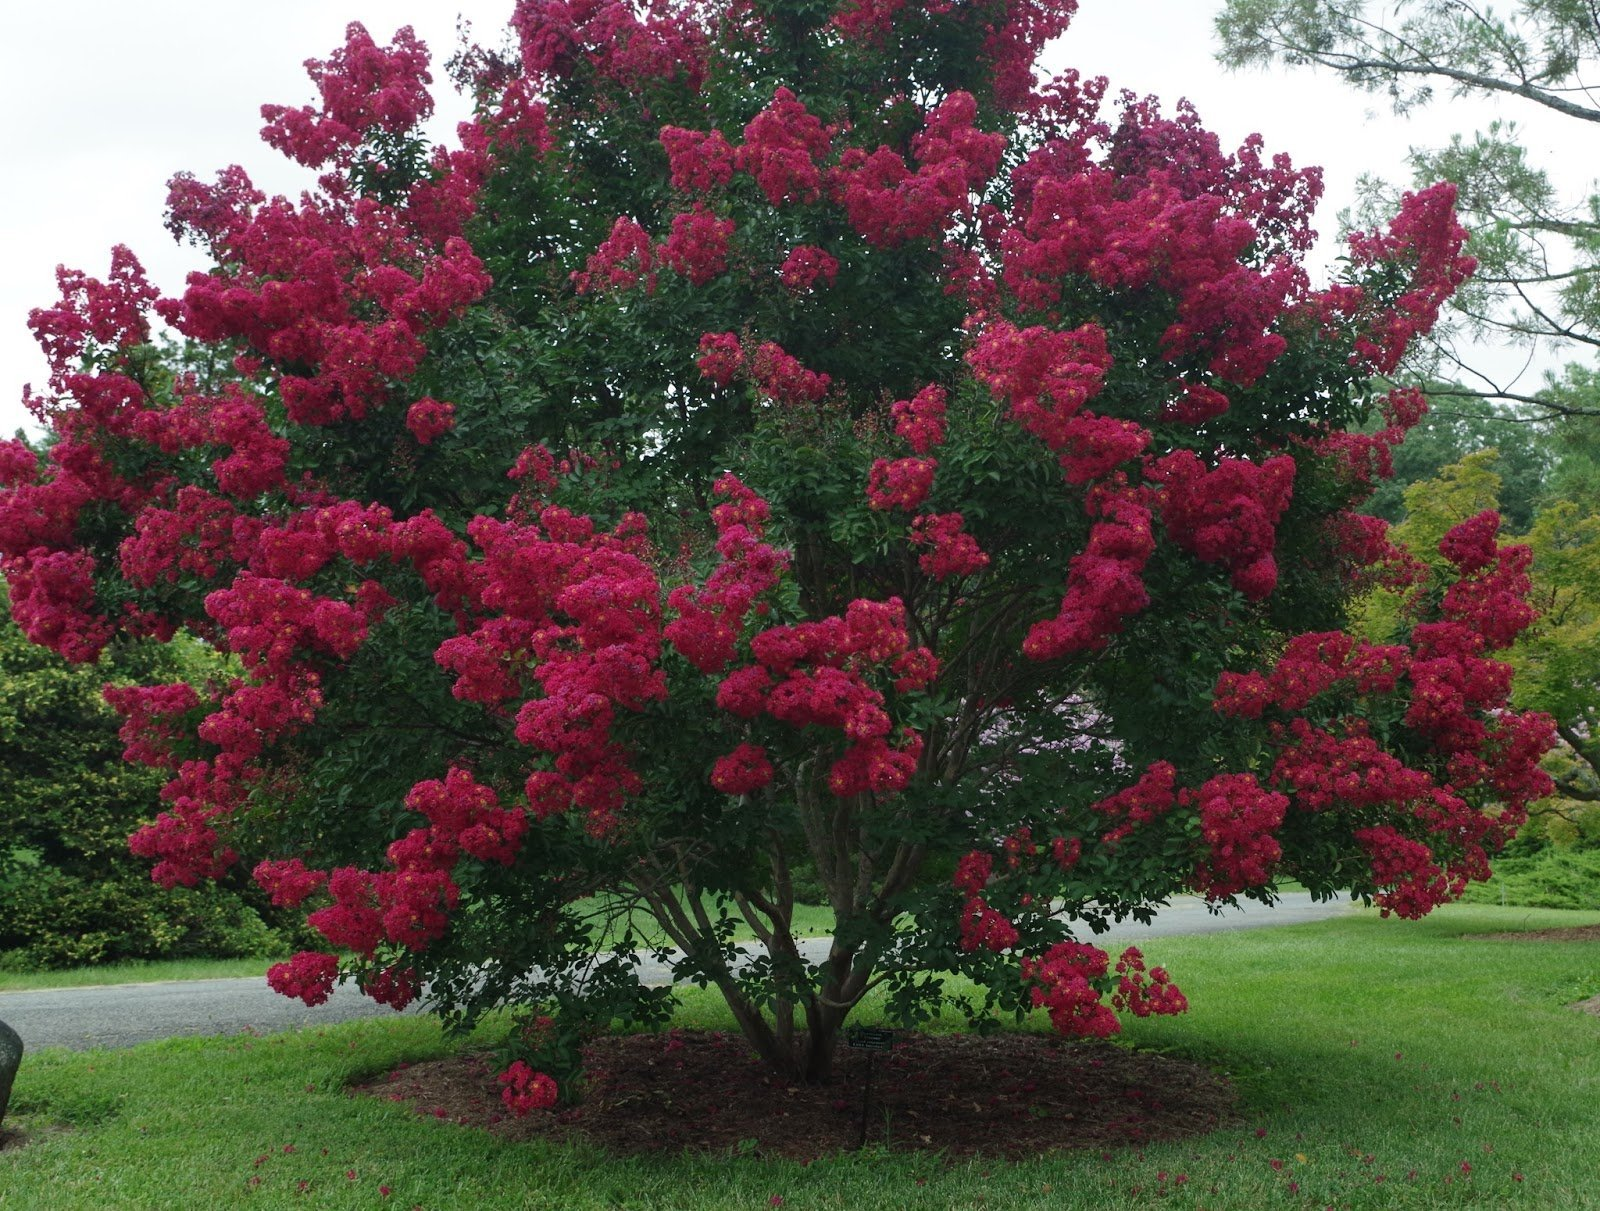 CENTENNIAL SPIRIT Crape Myrtle, Pack of 5, Bright Red, Matures 14'-16' (2-4ft Tall When Shipped, Well Rooted with Pot in Soil)